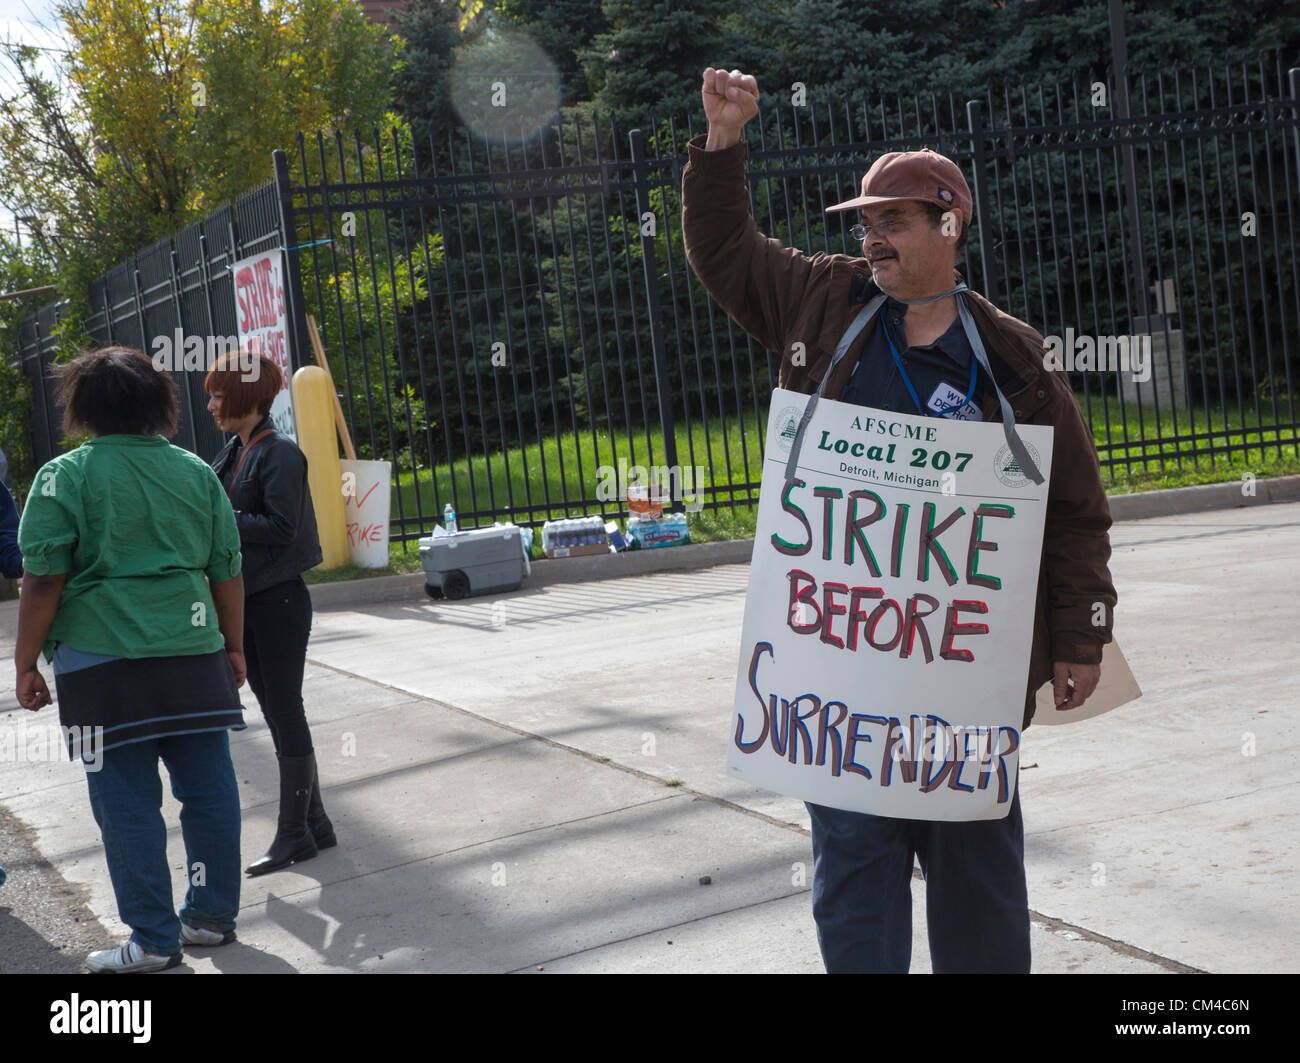 Detroit, Michigan - Workers at the Detroit Water and Sewerage Department walked off the job, protesting a management - Stock Image